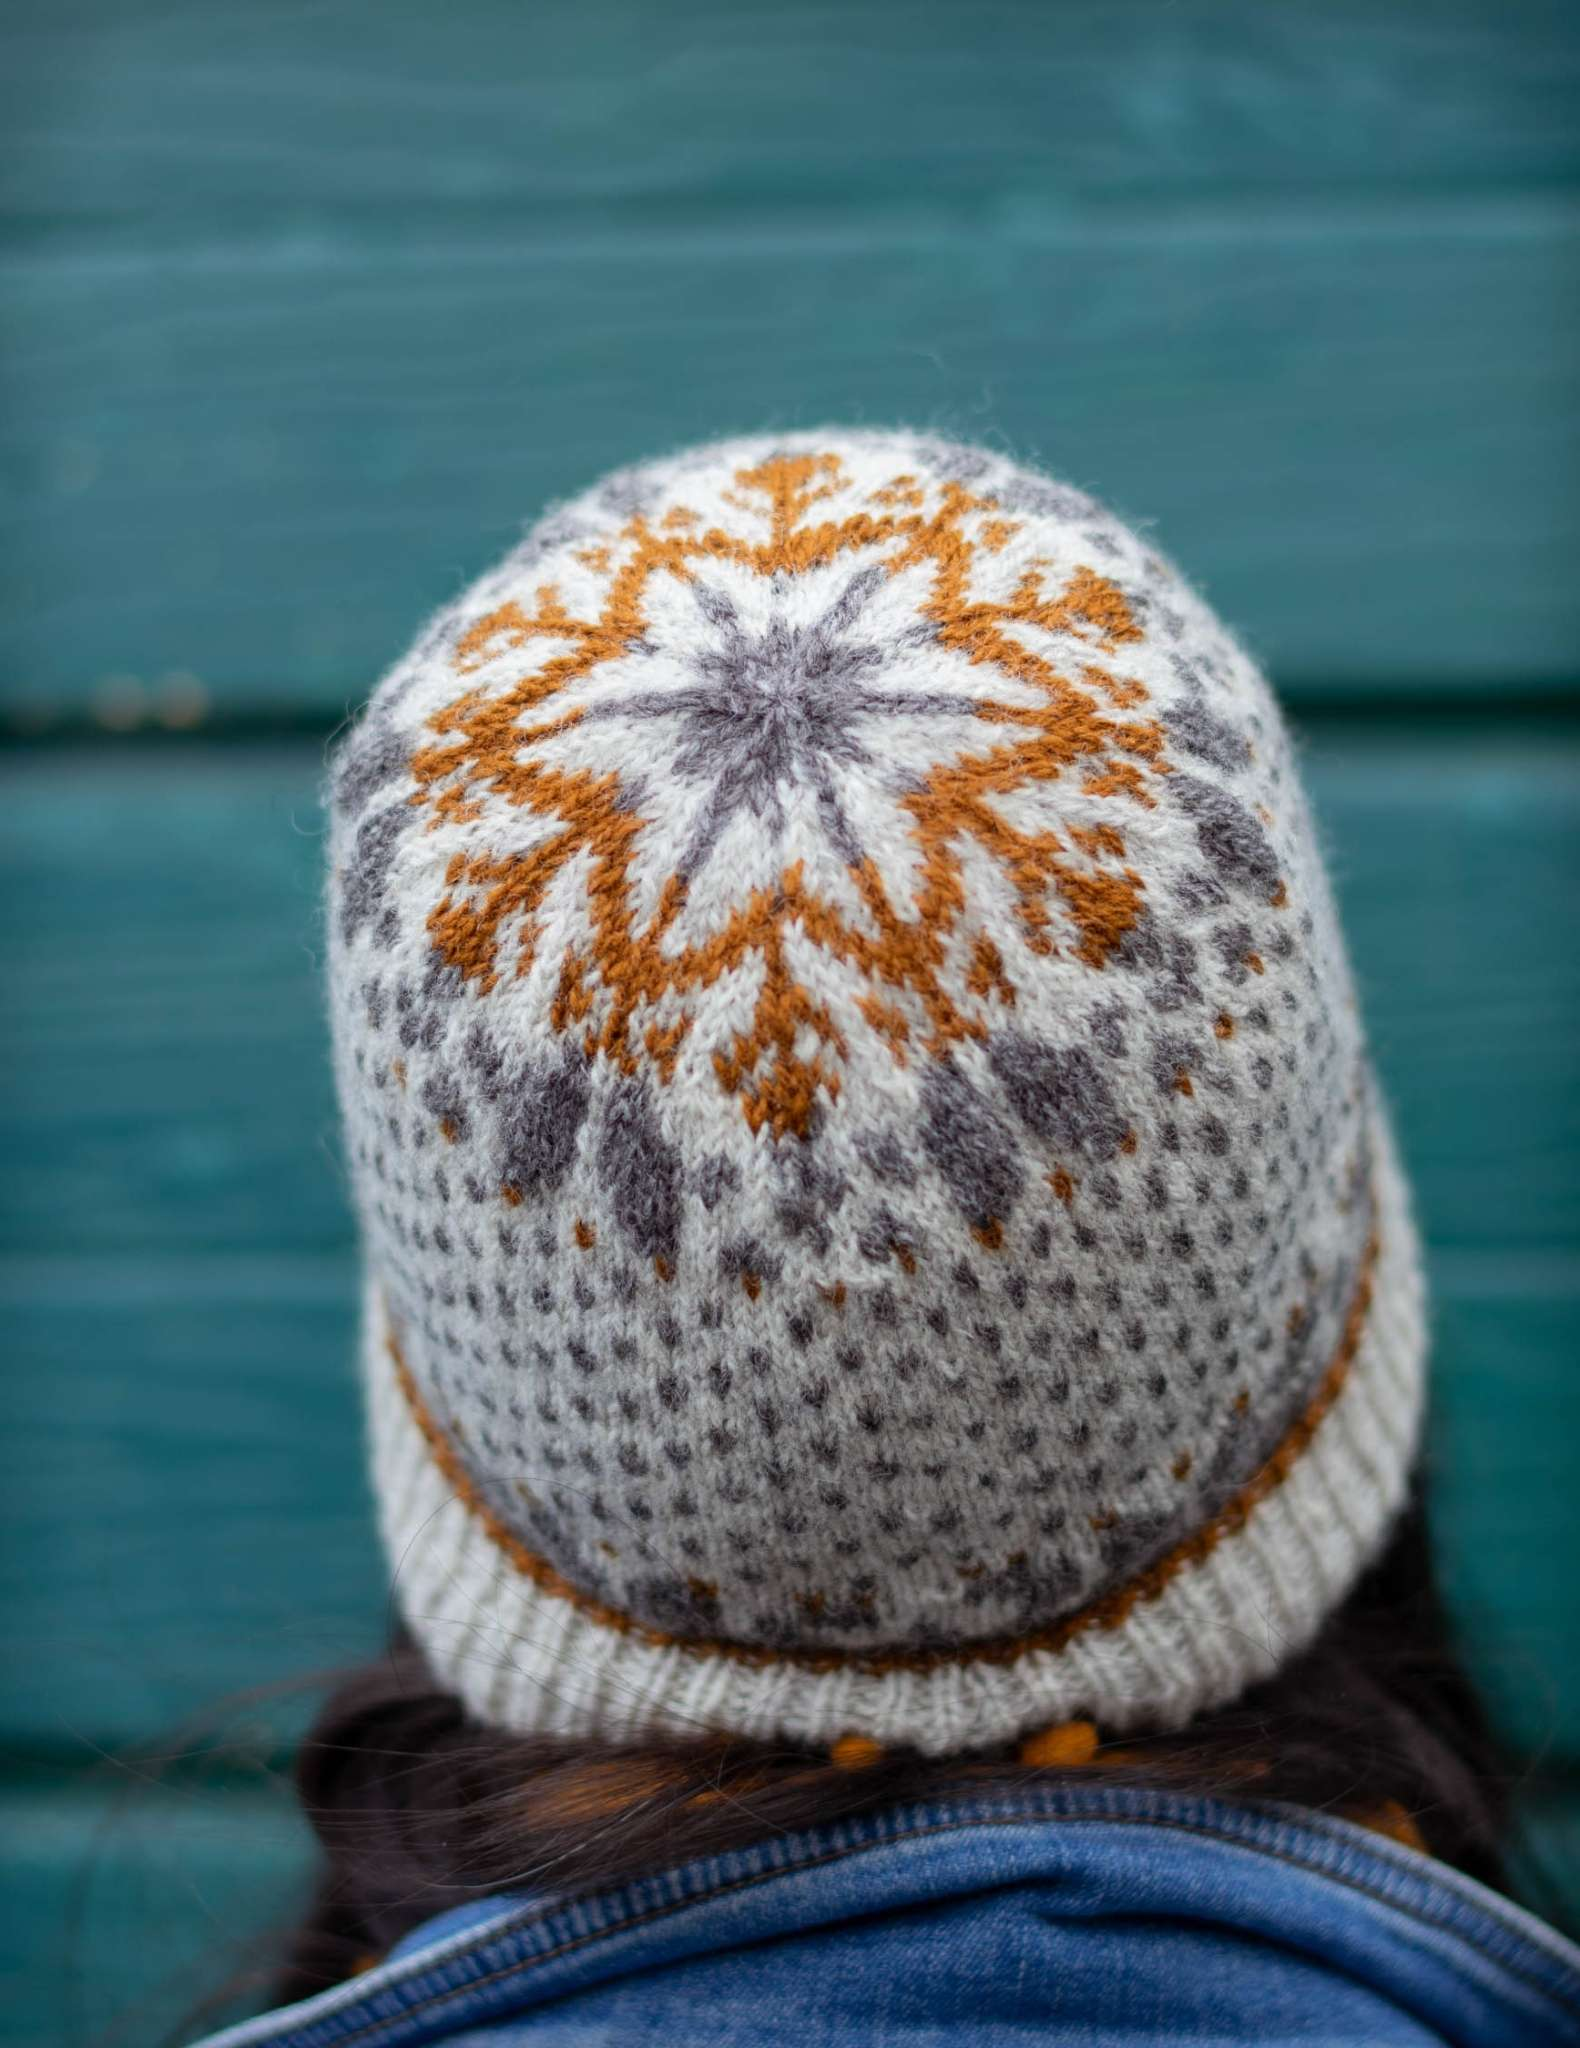 A colourwork hat with snowflake motif in cream, grey and brown. The hat is worn by a model in front of a teal wall, and only the back of the hat is visible